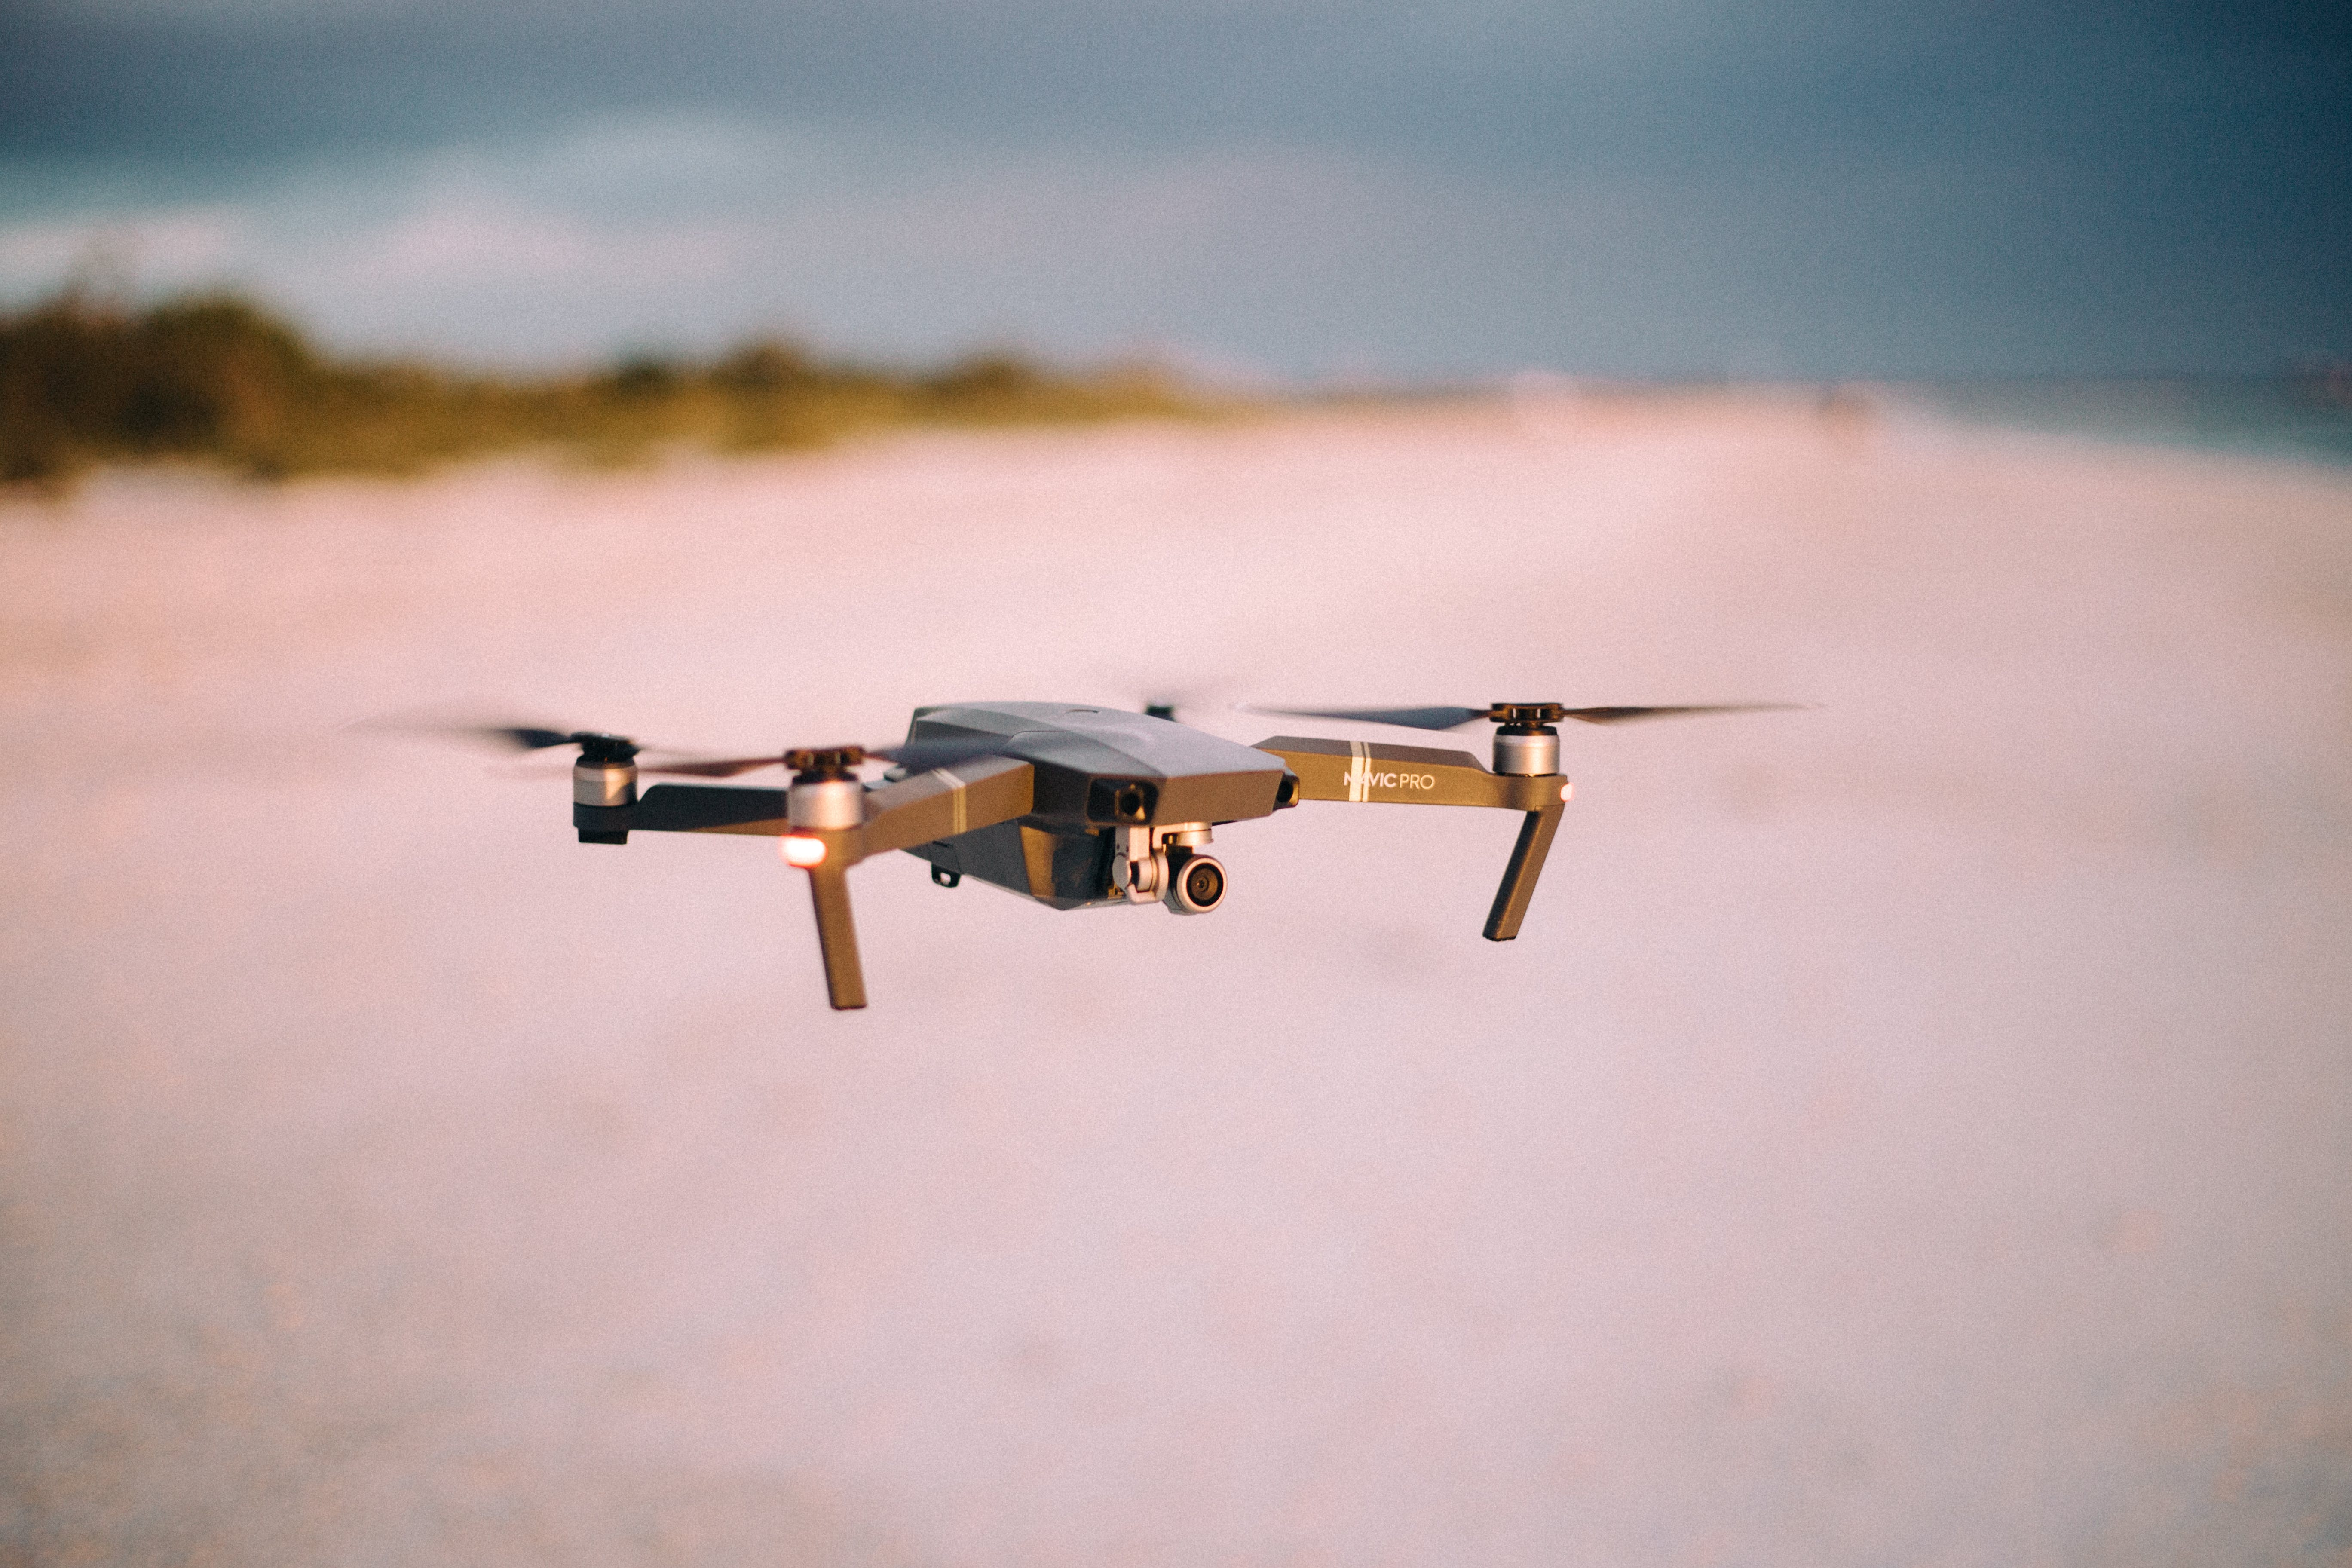 Drone Flight over the Sand